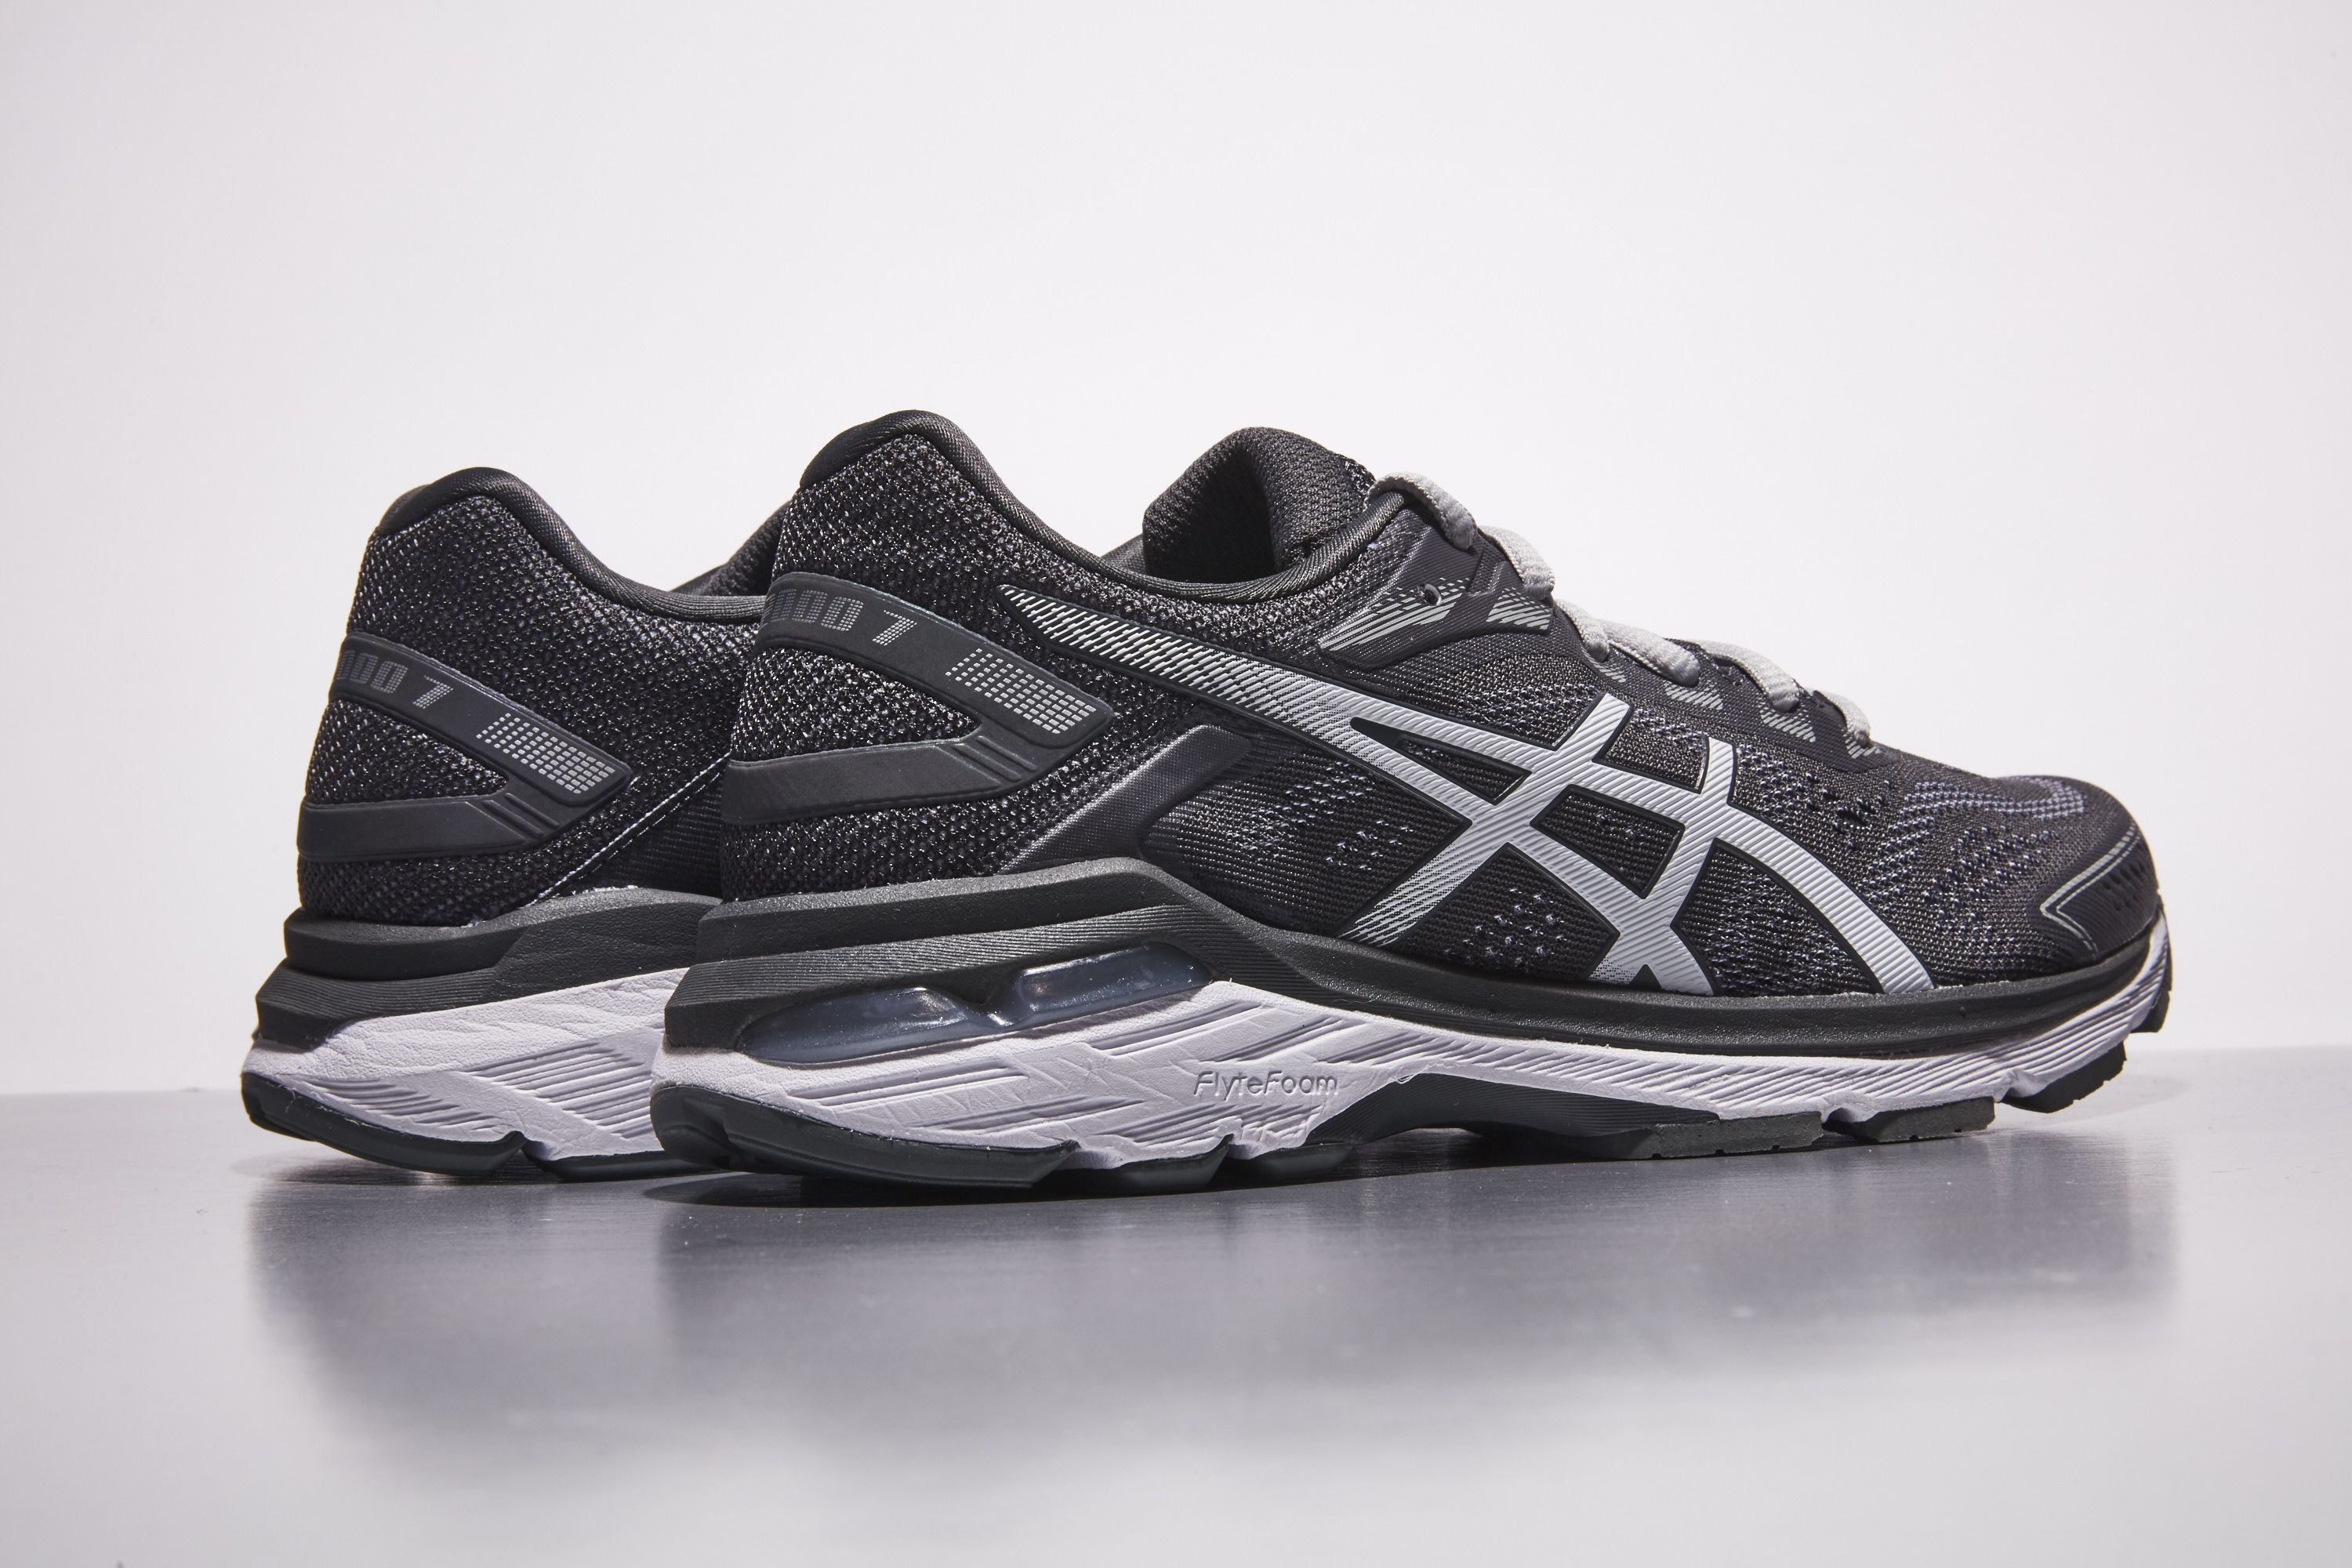 Asics GT-2000 7 Review | Best Running Shoes